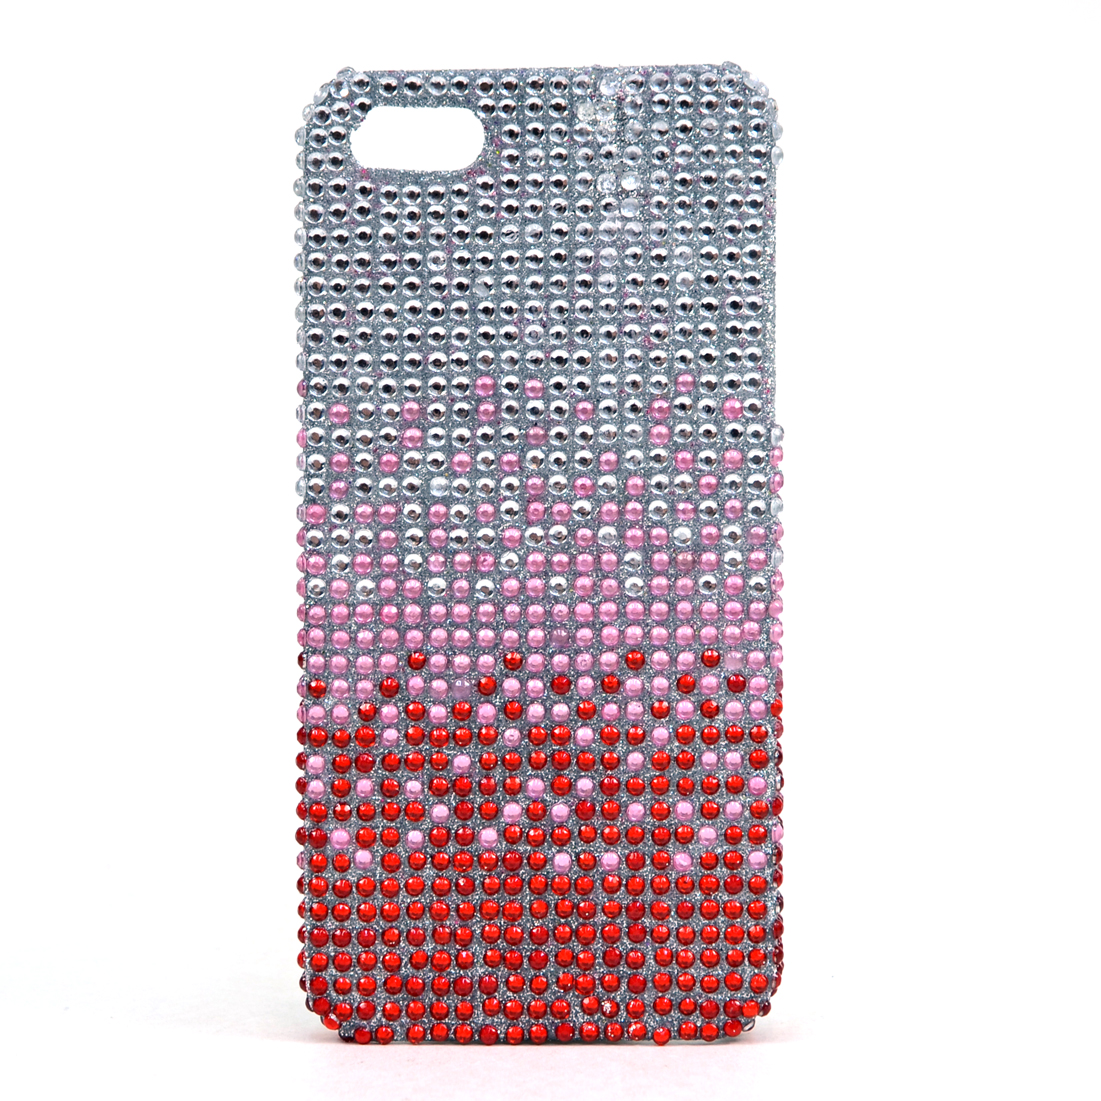 Dasein® Rhinestone Embellished Gradient Cell Phone Case for iPhone 4 and 4s